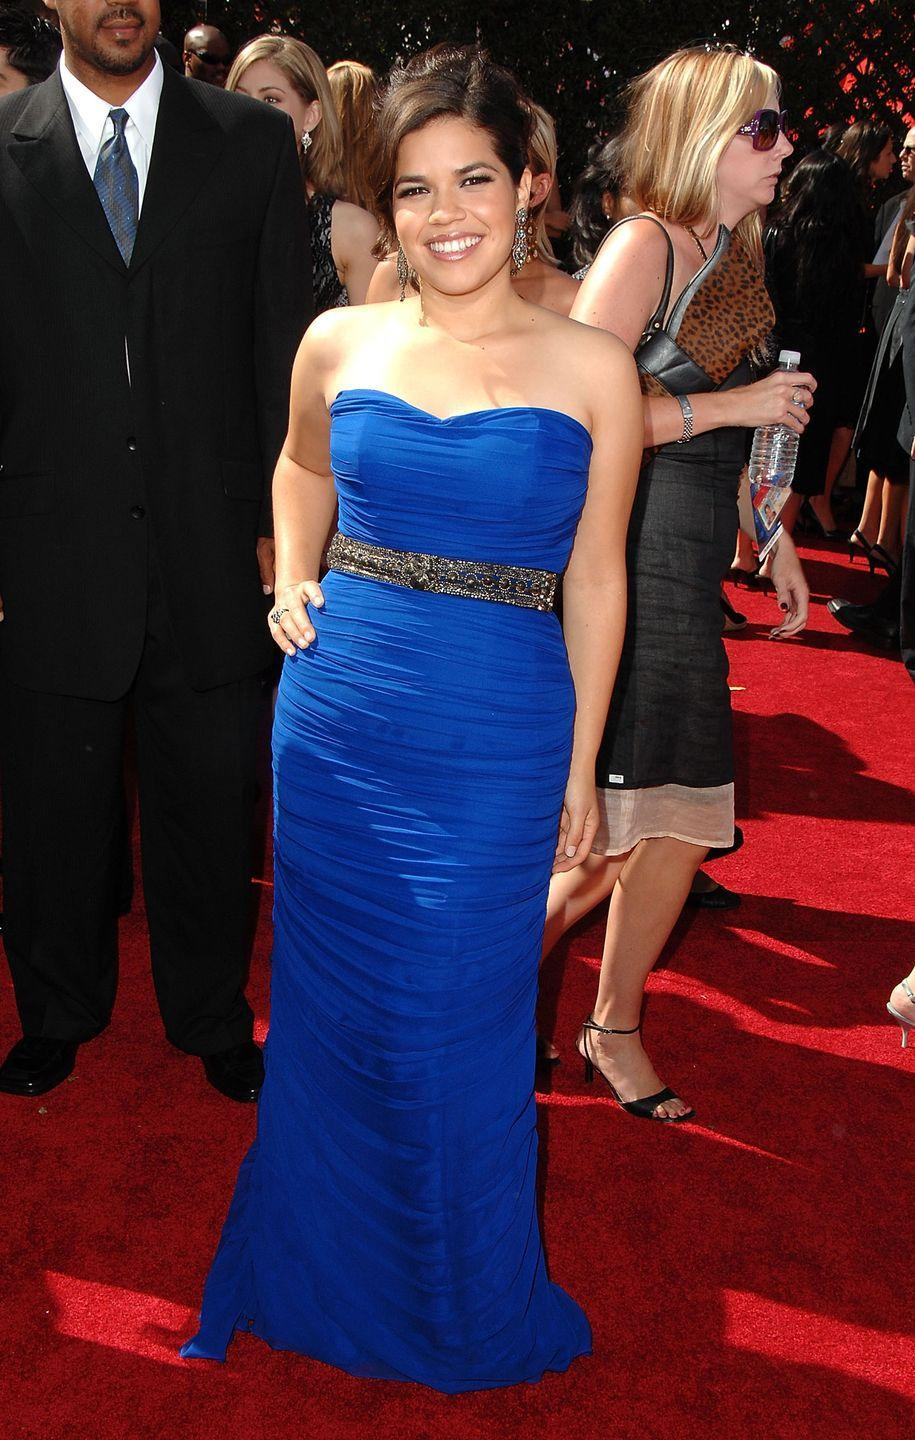 <p>Ferrera wore this blue dress when she won her Emmy for Outstanding Lead Actress in a Comedy Series in 2007. </p>